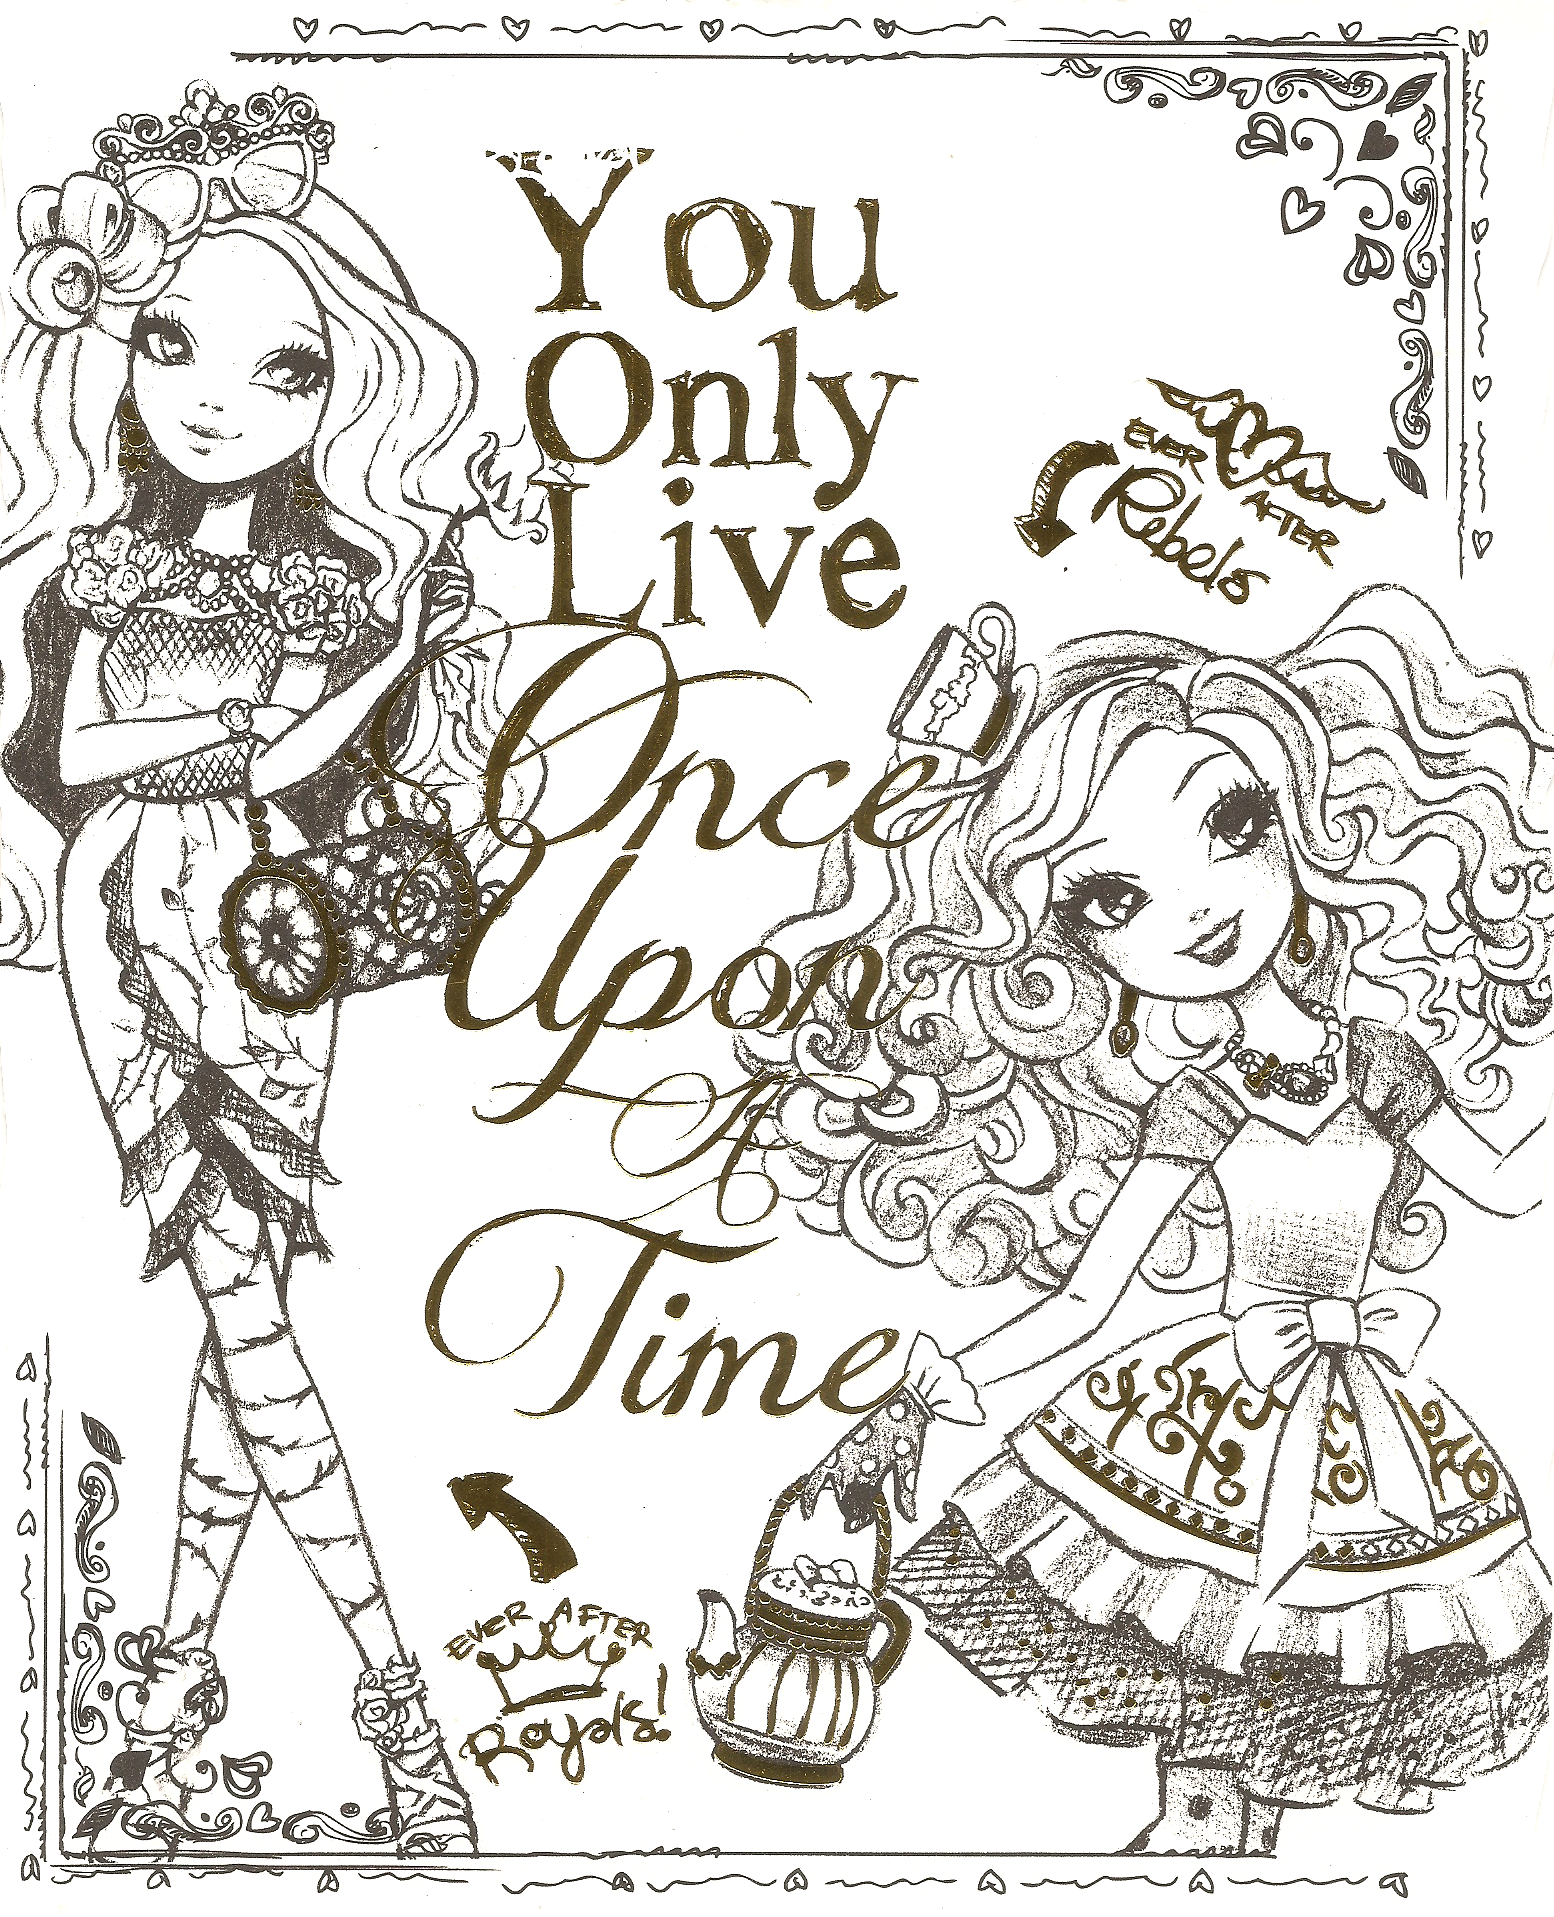 Ever After High Color Page 4 By Obscurepairing On Deviantart Ever After High Coloring Pages Coloring Books